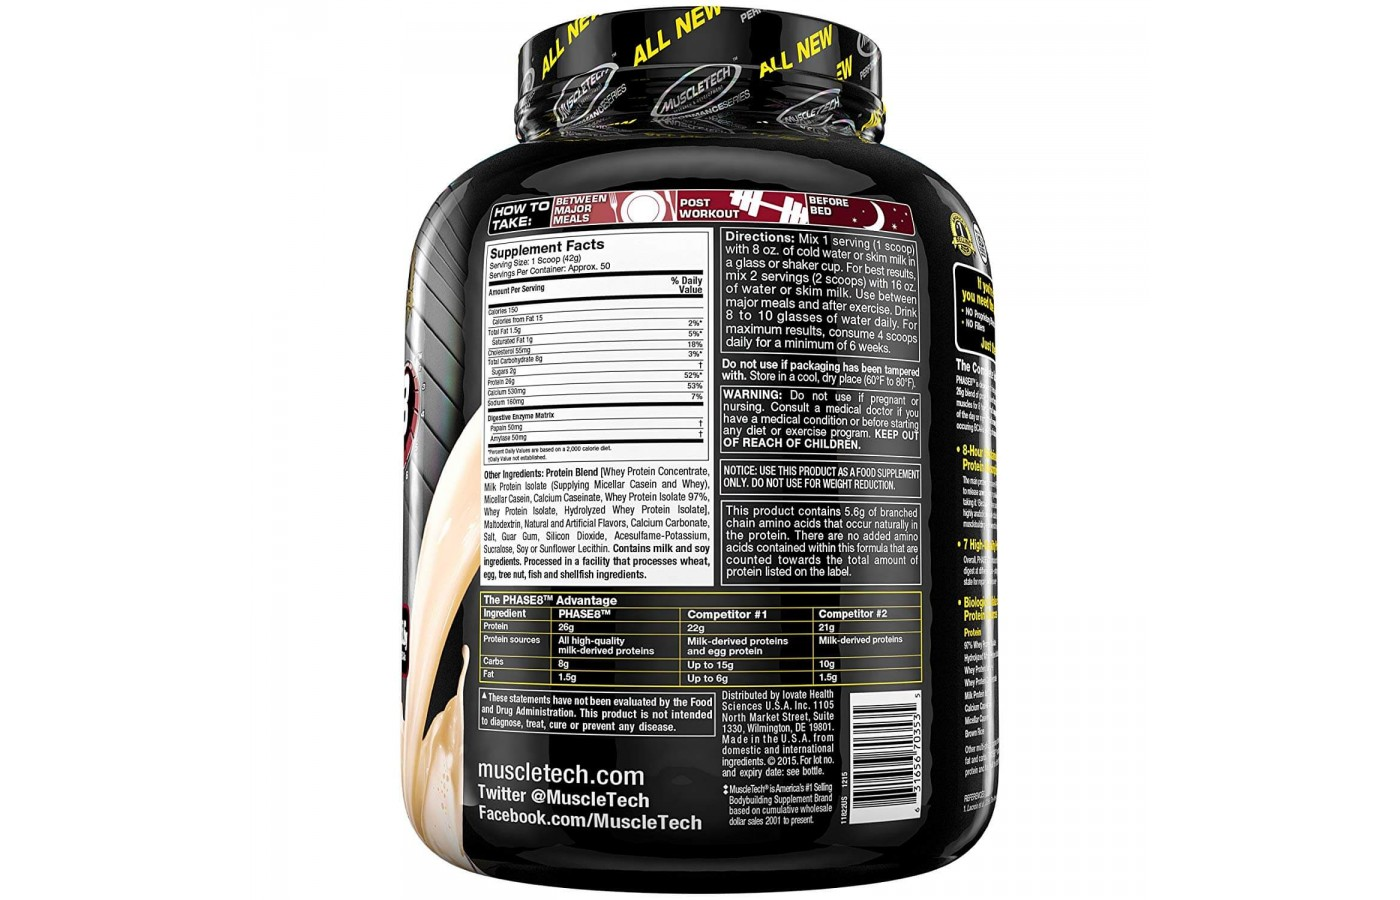 MuscleTech Nutrition Facts